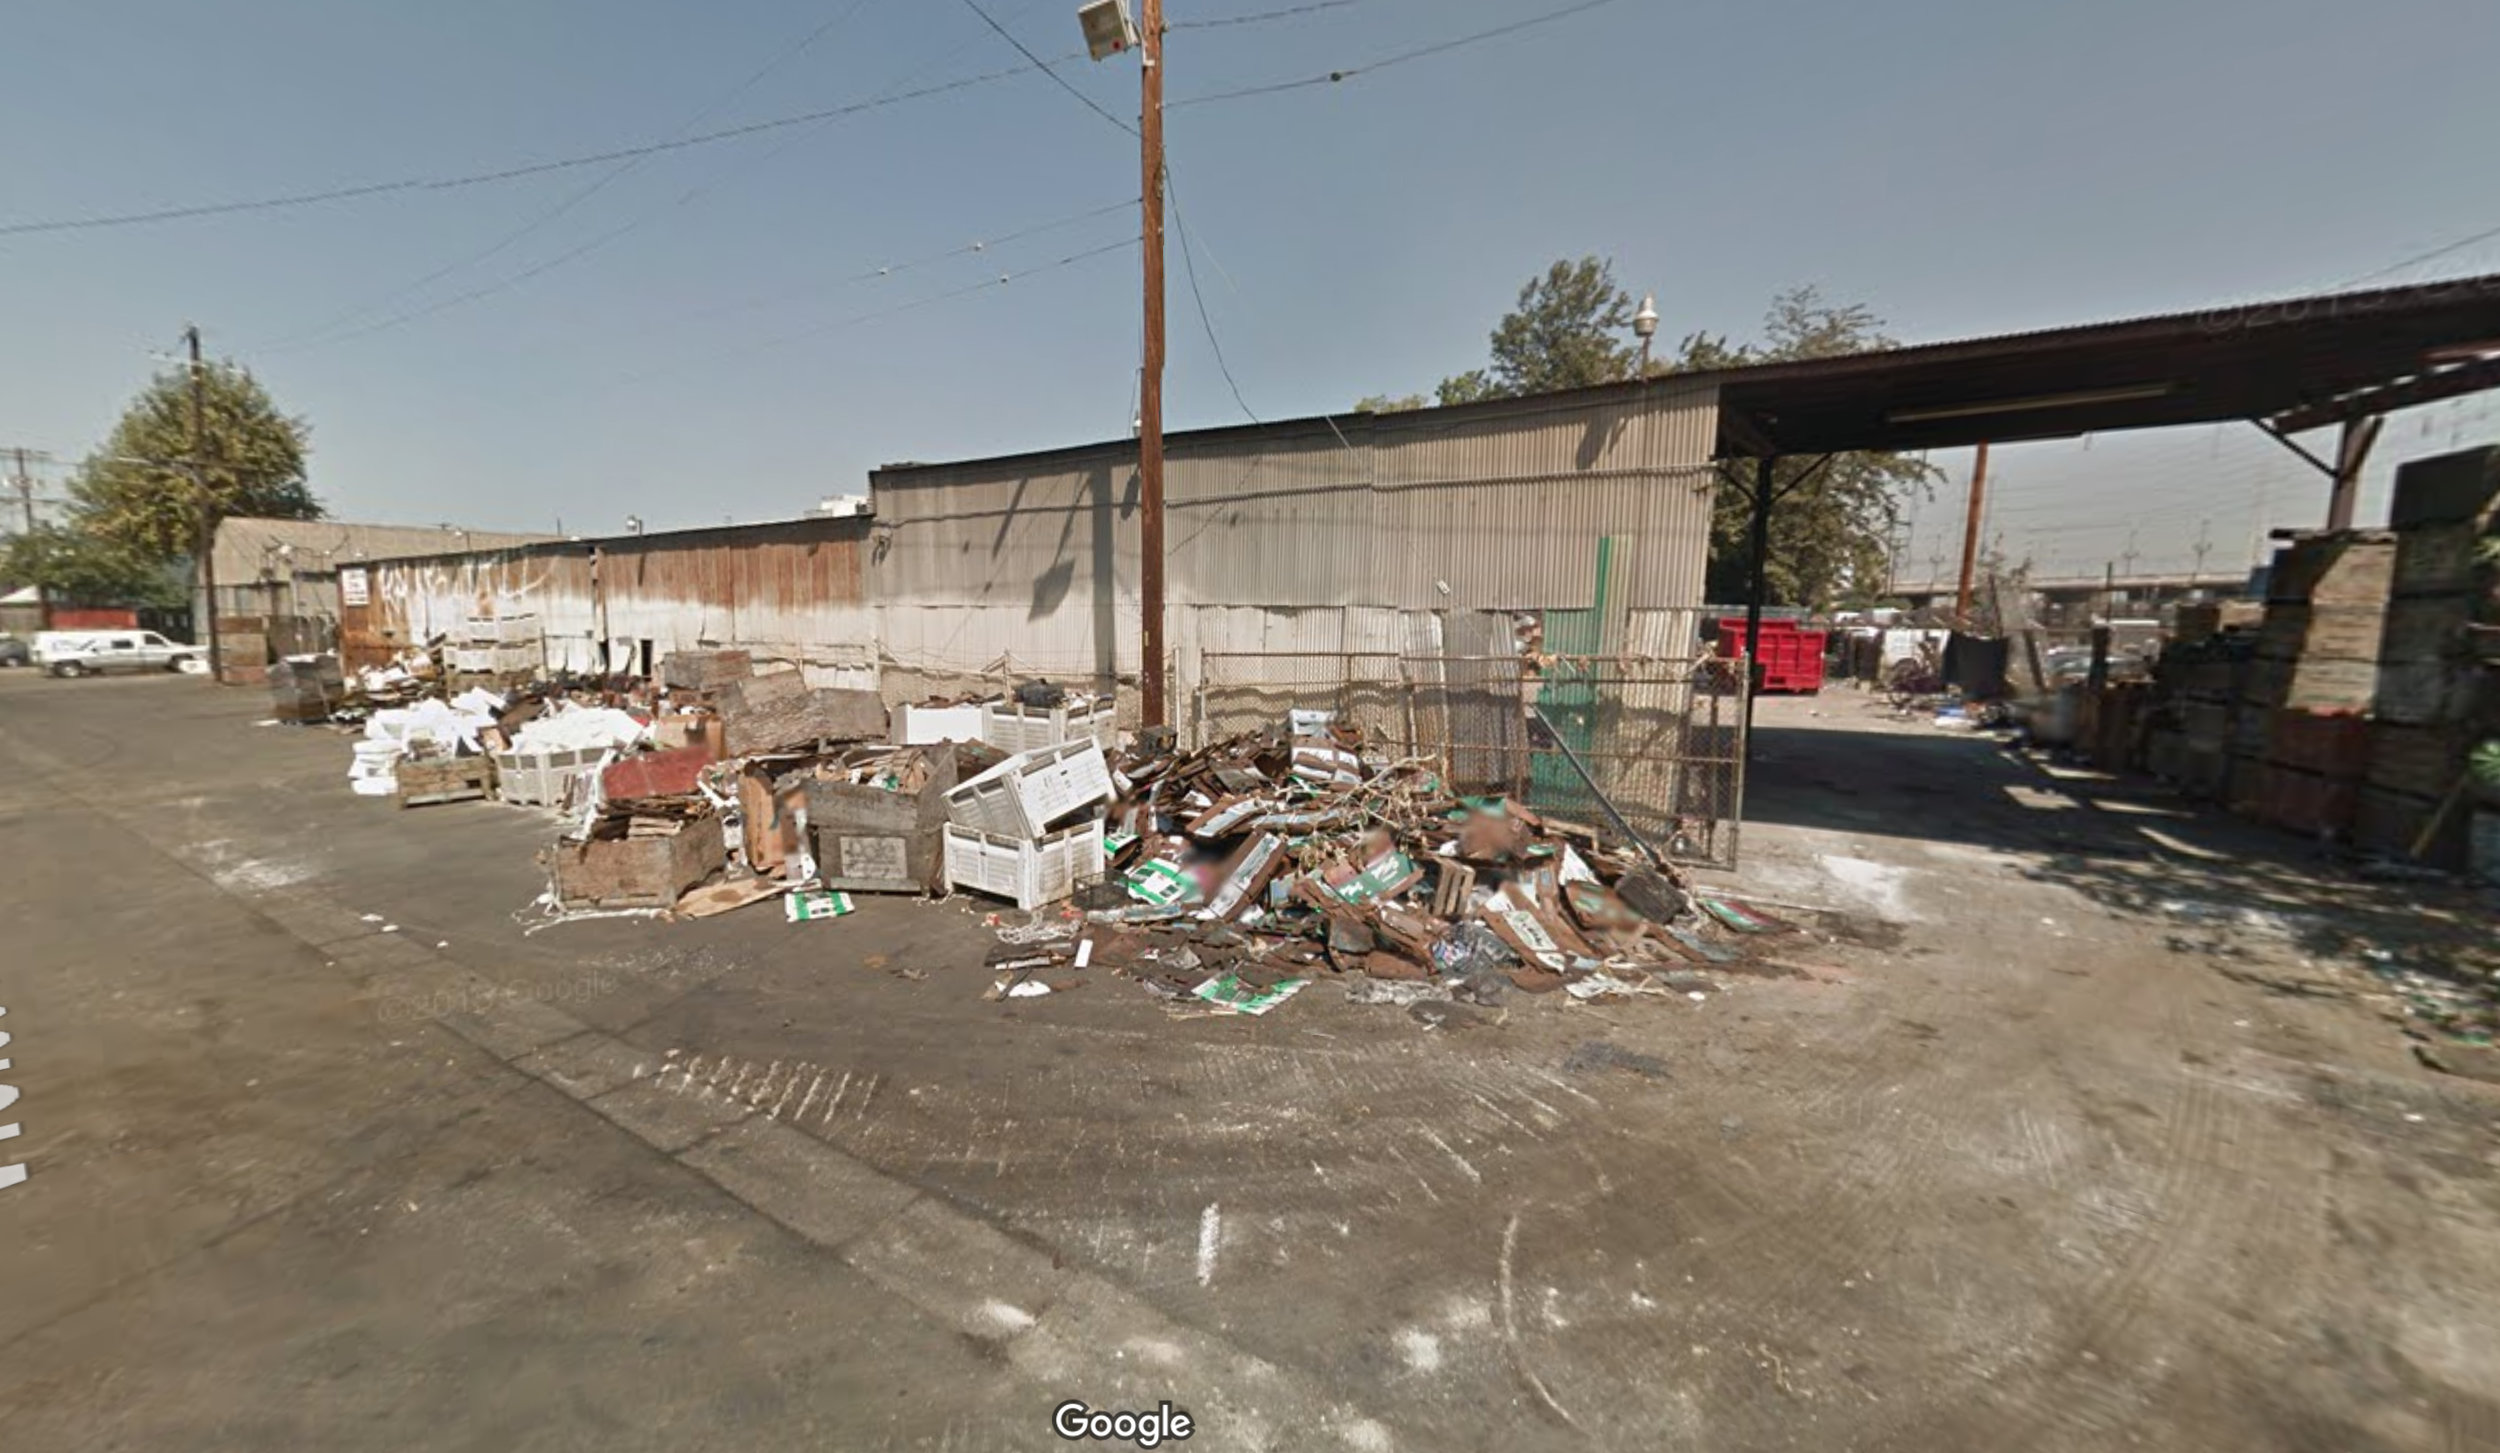 If Measure S passes, it would indefinitely stop the redevelopment of this  literal trash heap  at 2117 E Violet St into 509 new apartments,  including 76 units affordable to low-income households . Image source: Google Maps.